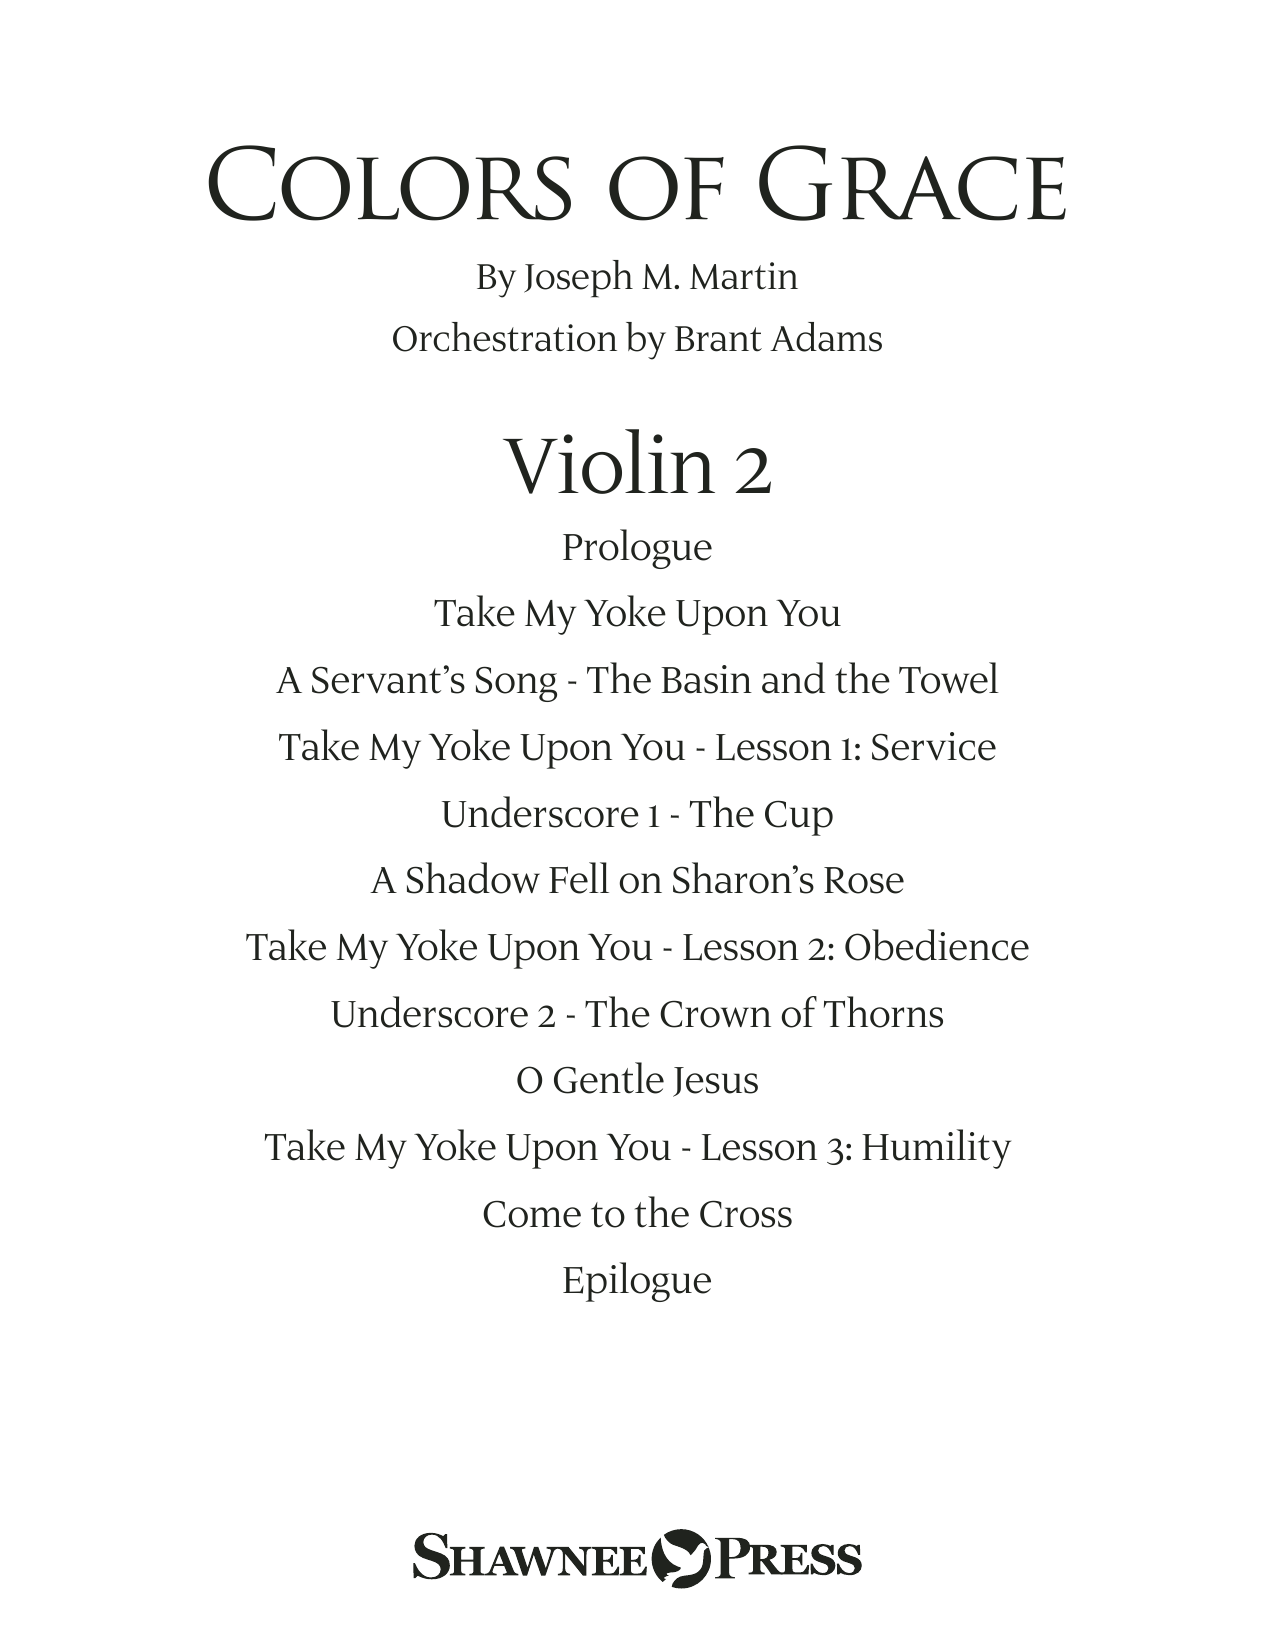 Colors of Grace - Lessons for Lent (New Edition) (Orchestra Accompaniment) - Violin 2 (Choir Instrumental Pak)